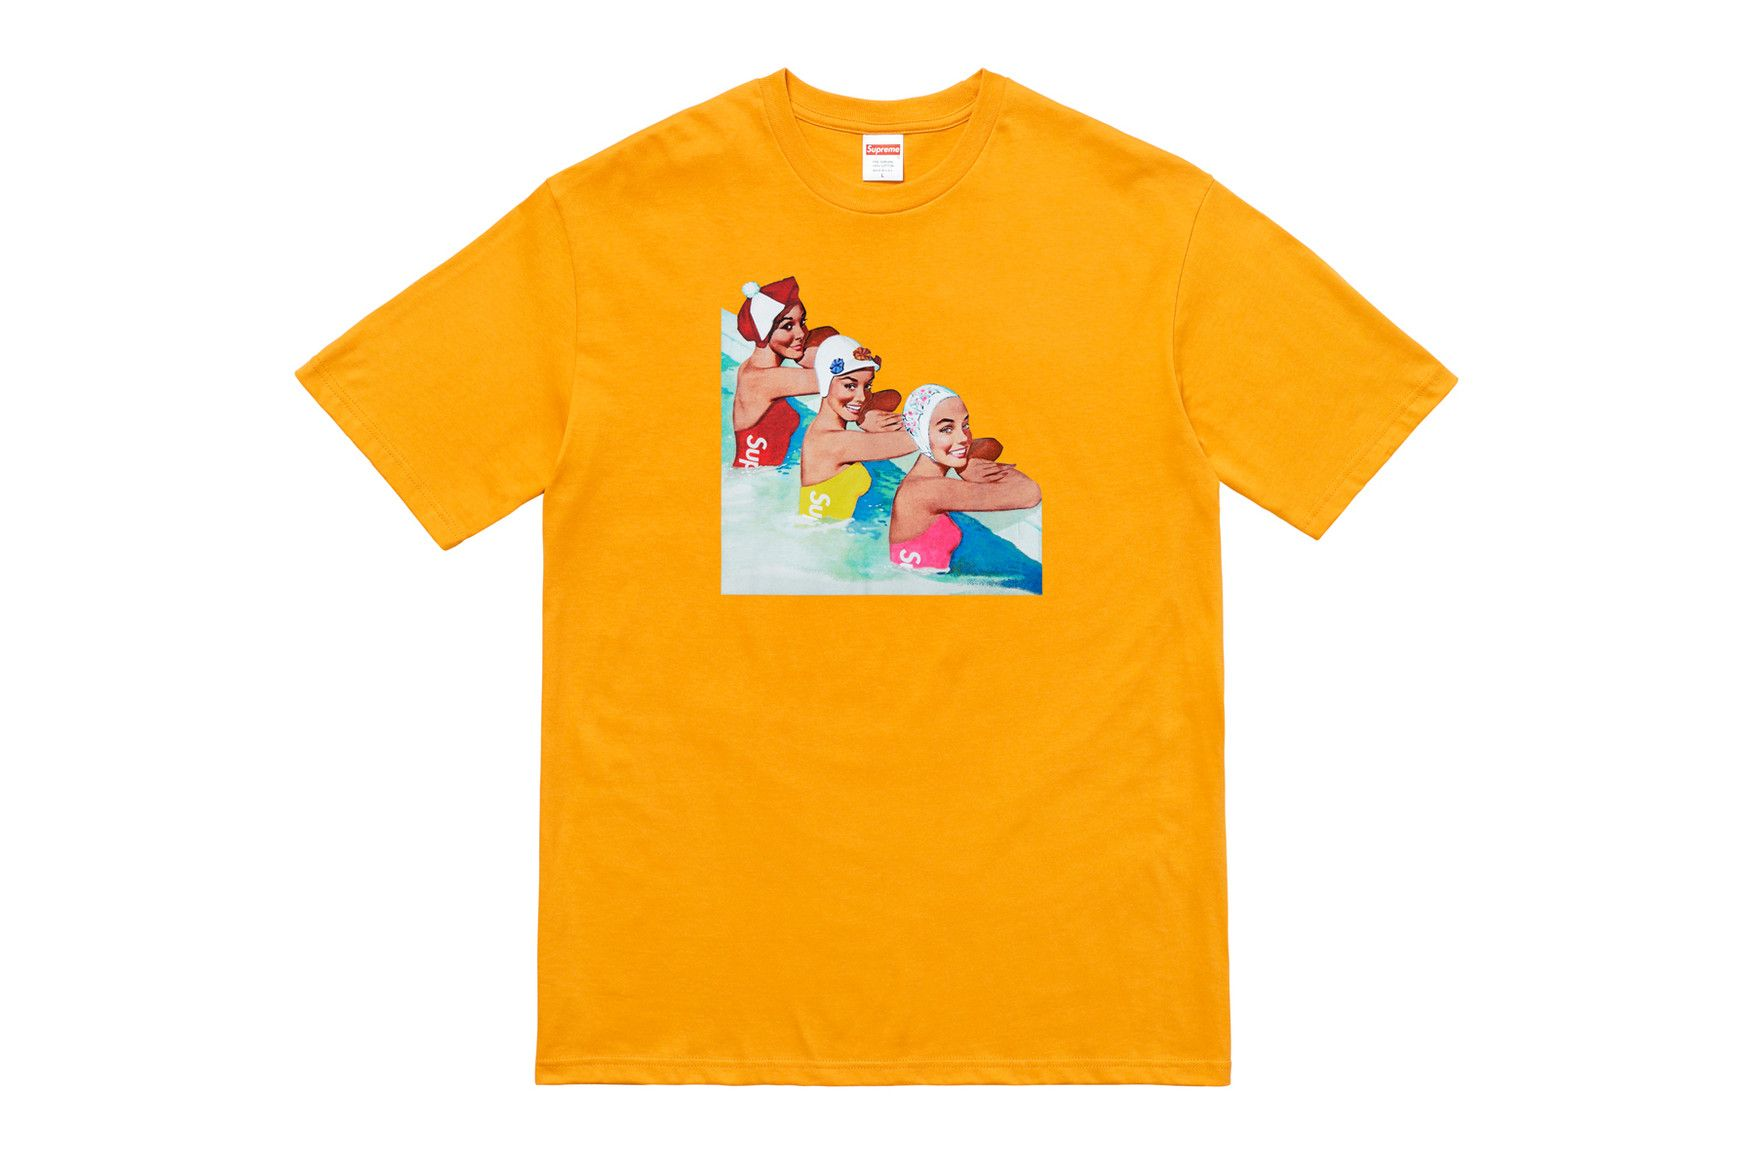 df4b990f Supreme Summer 2018 Tees: Gonz Logo, Mona Lisa and More | Tees ...